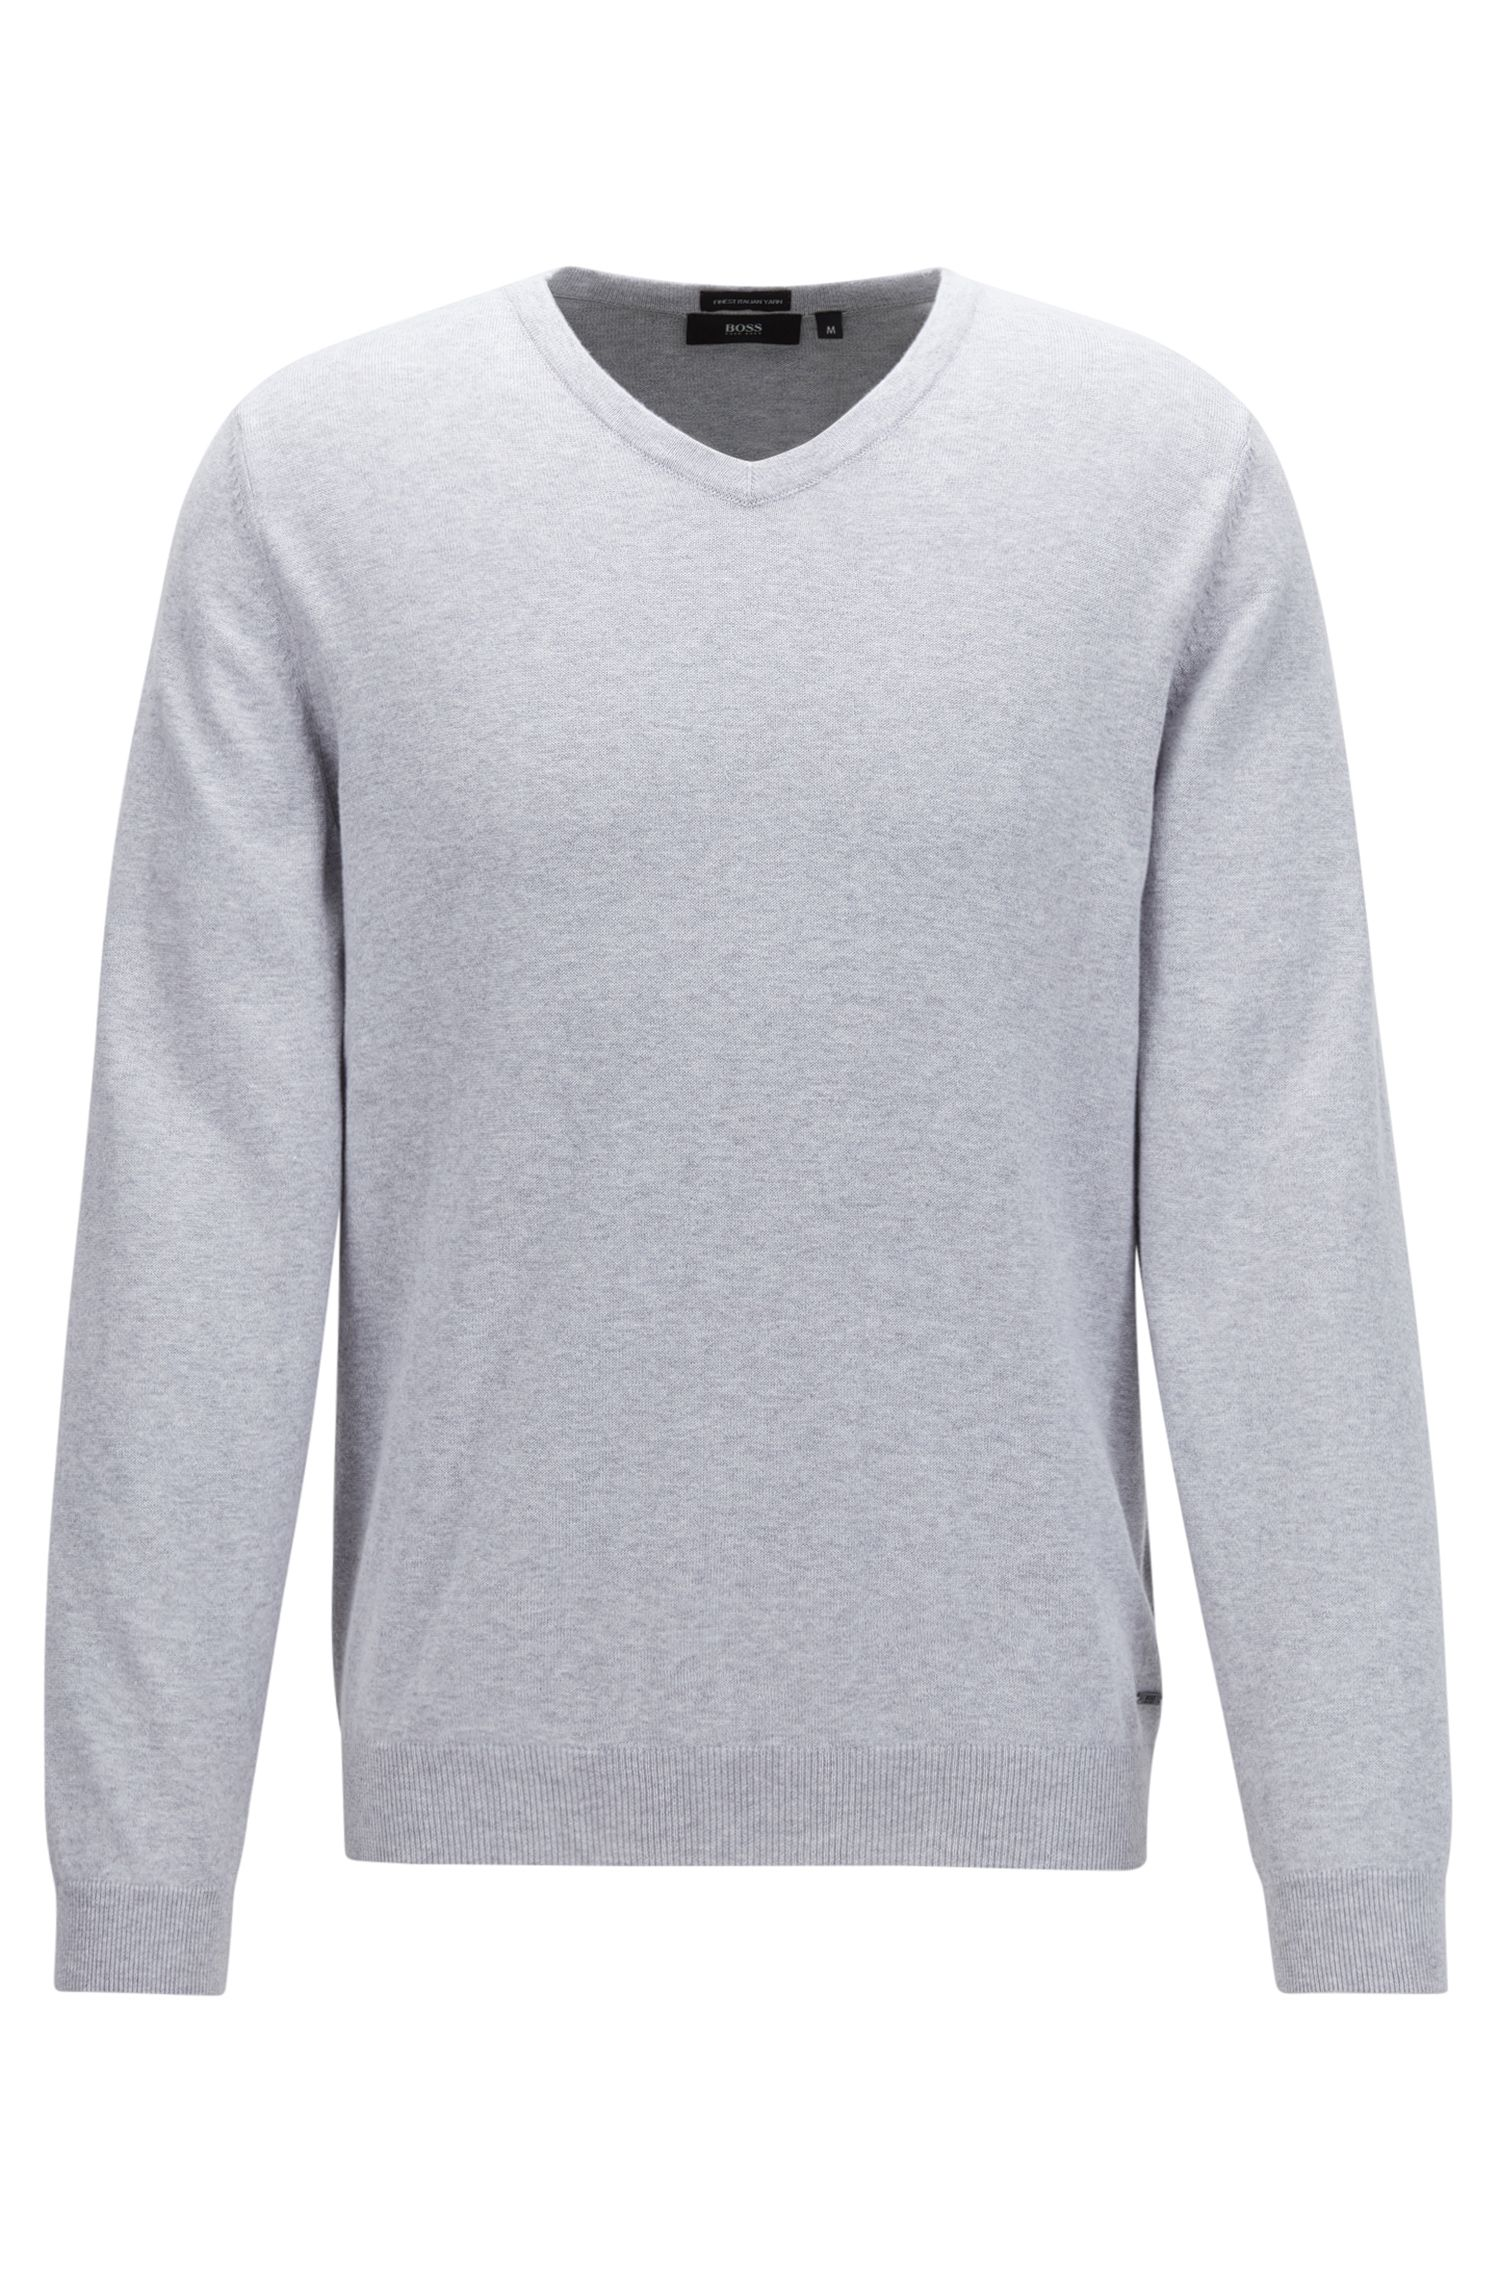 V-neck sweater in fine Italian cotton